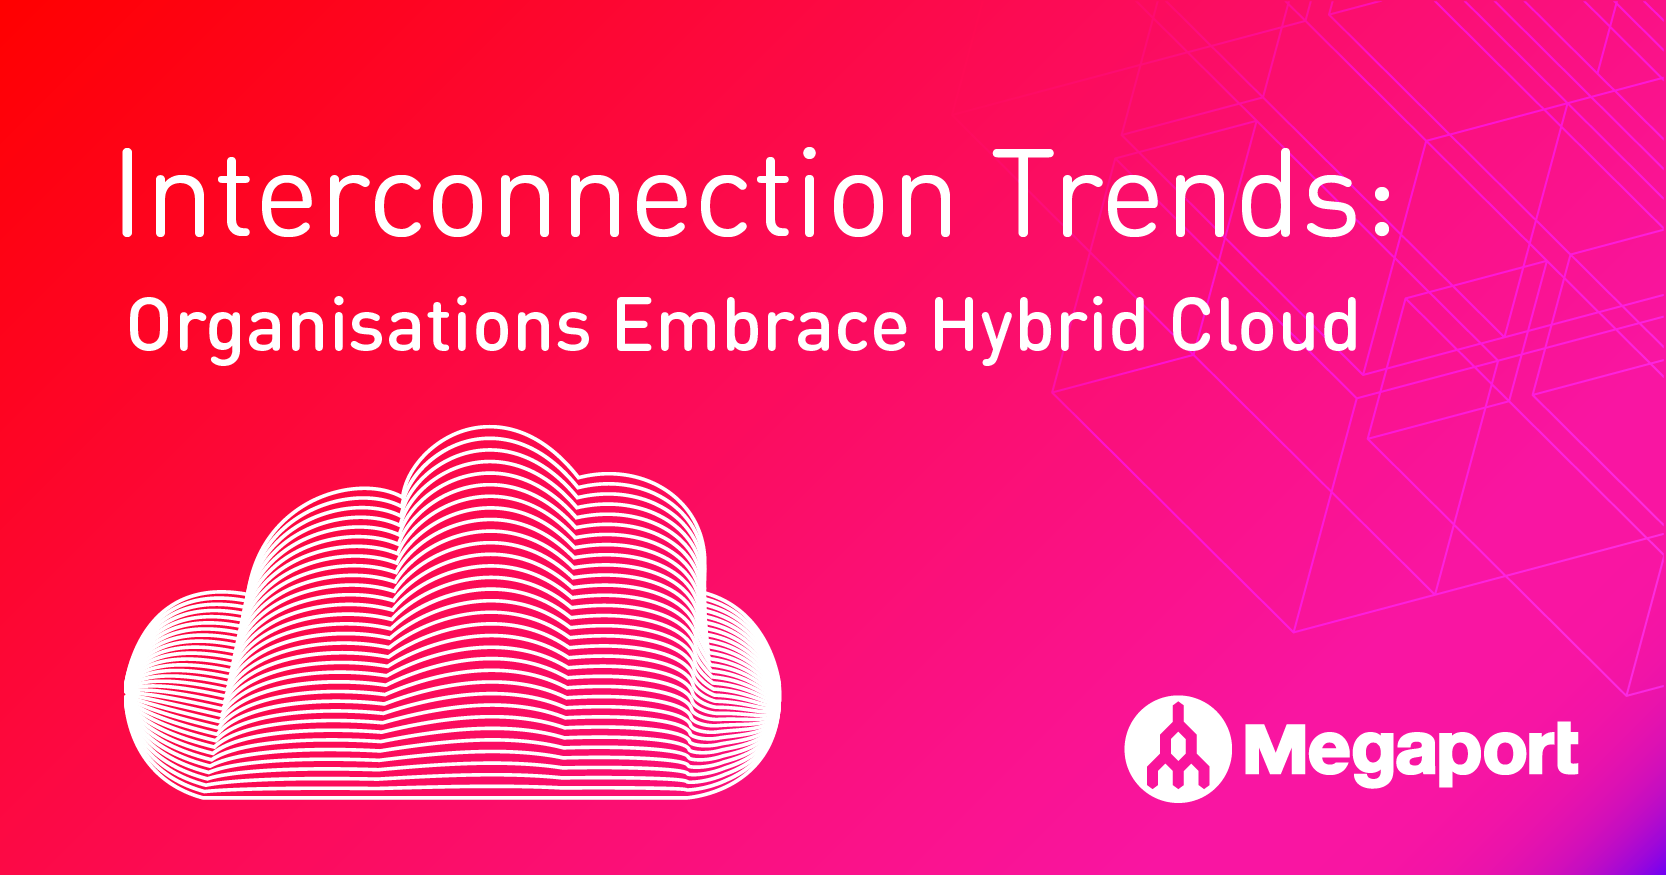 Interconnection Trends: Organisations Embrace Hybrid Cloud